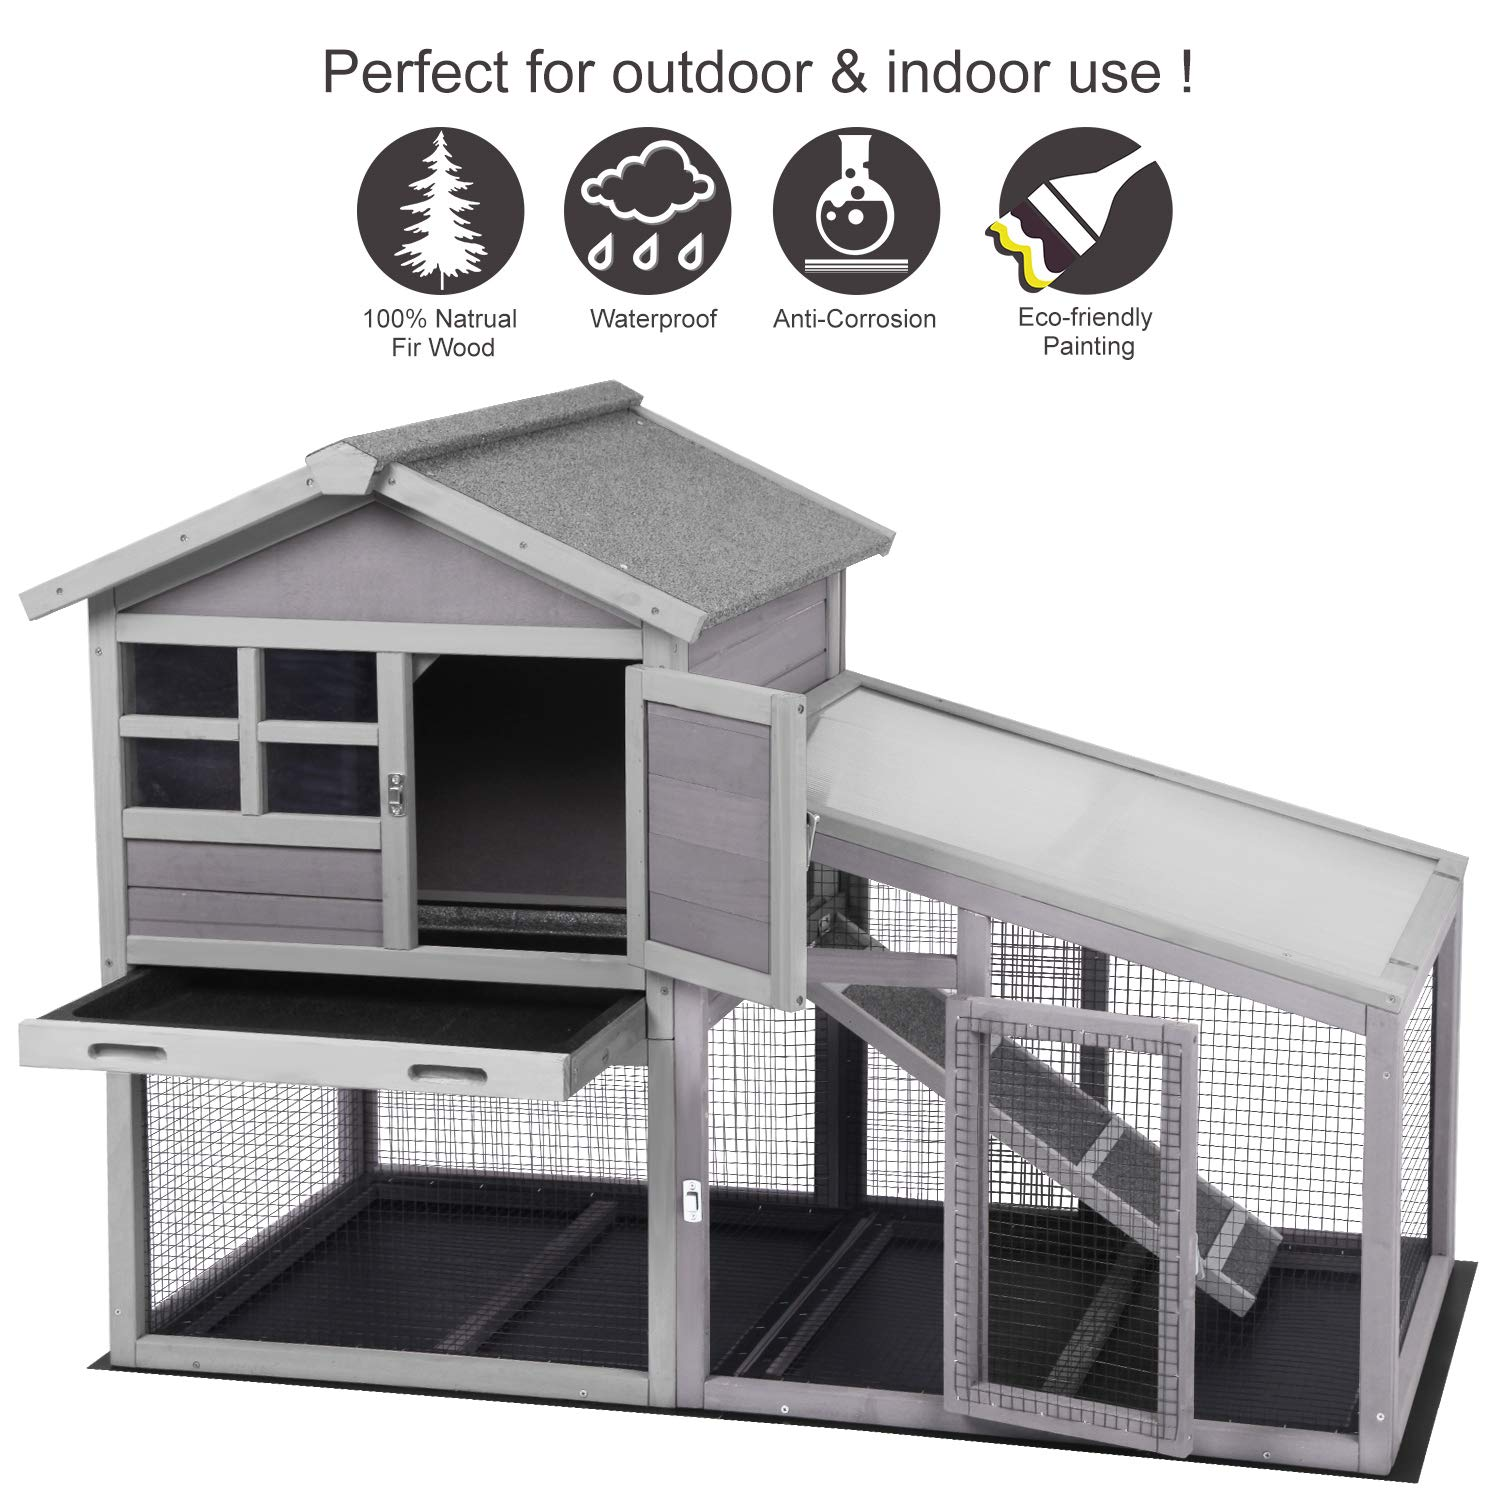 Aivituvin Chicken Coop Indoor and Outdoor,Rabbit Hutch with Removable Bottom Wire Mesh & PVC Layer,Deeper No LeakageTray,Wooden Hen House with Nesting Box,UV Panel by Aivituvin (Image #2)